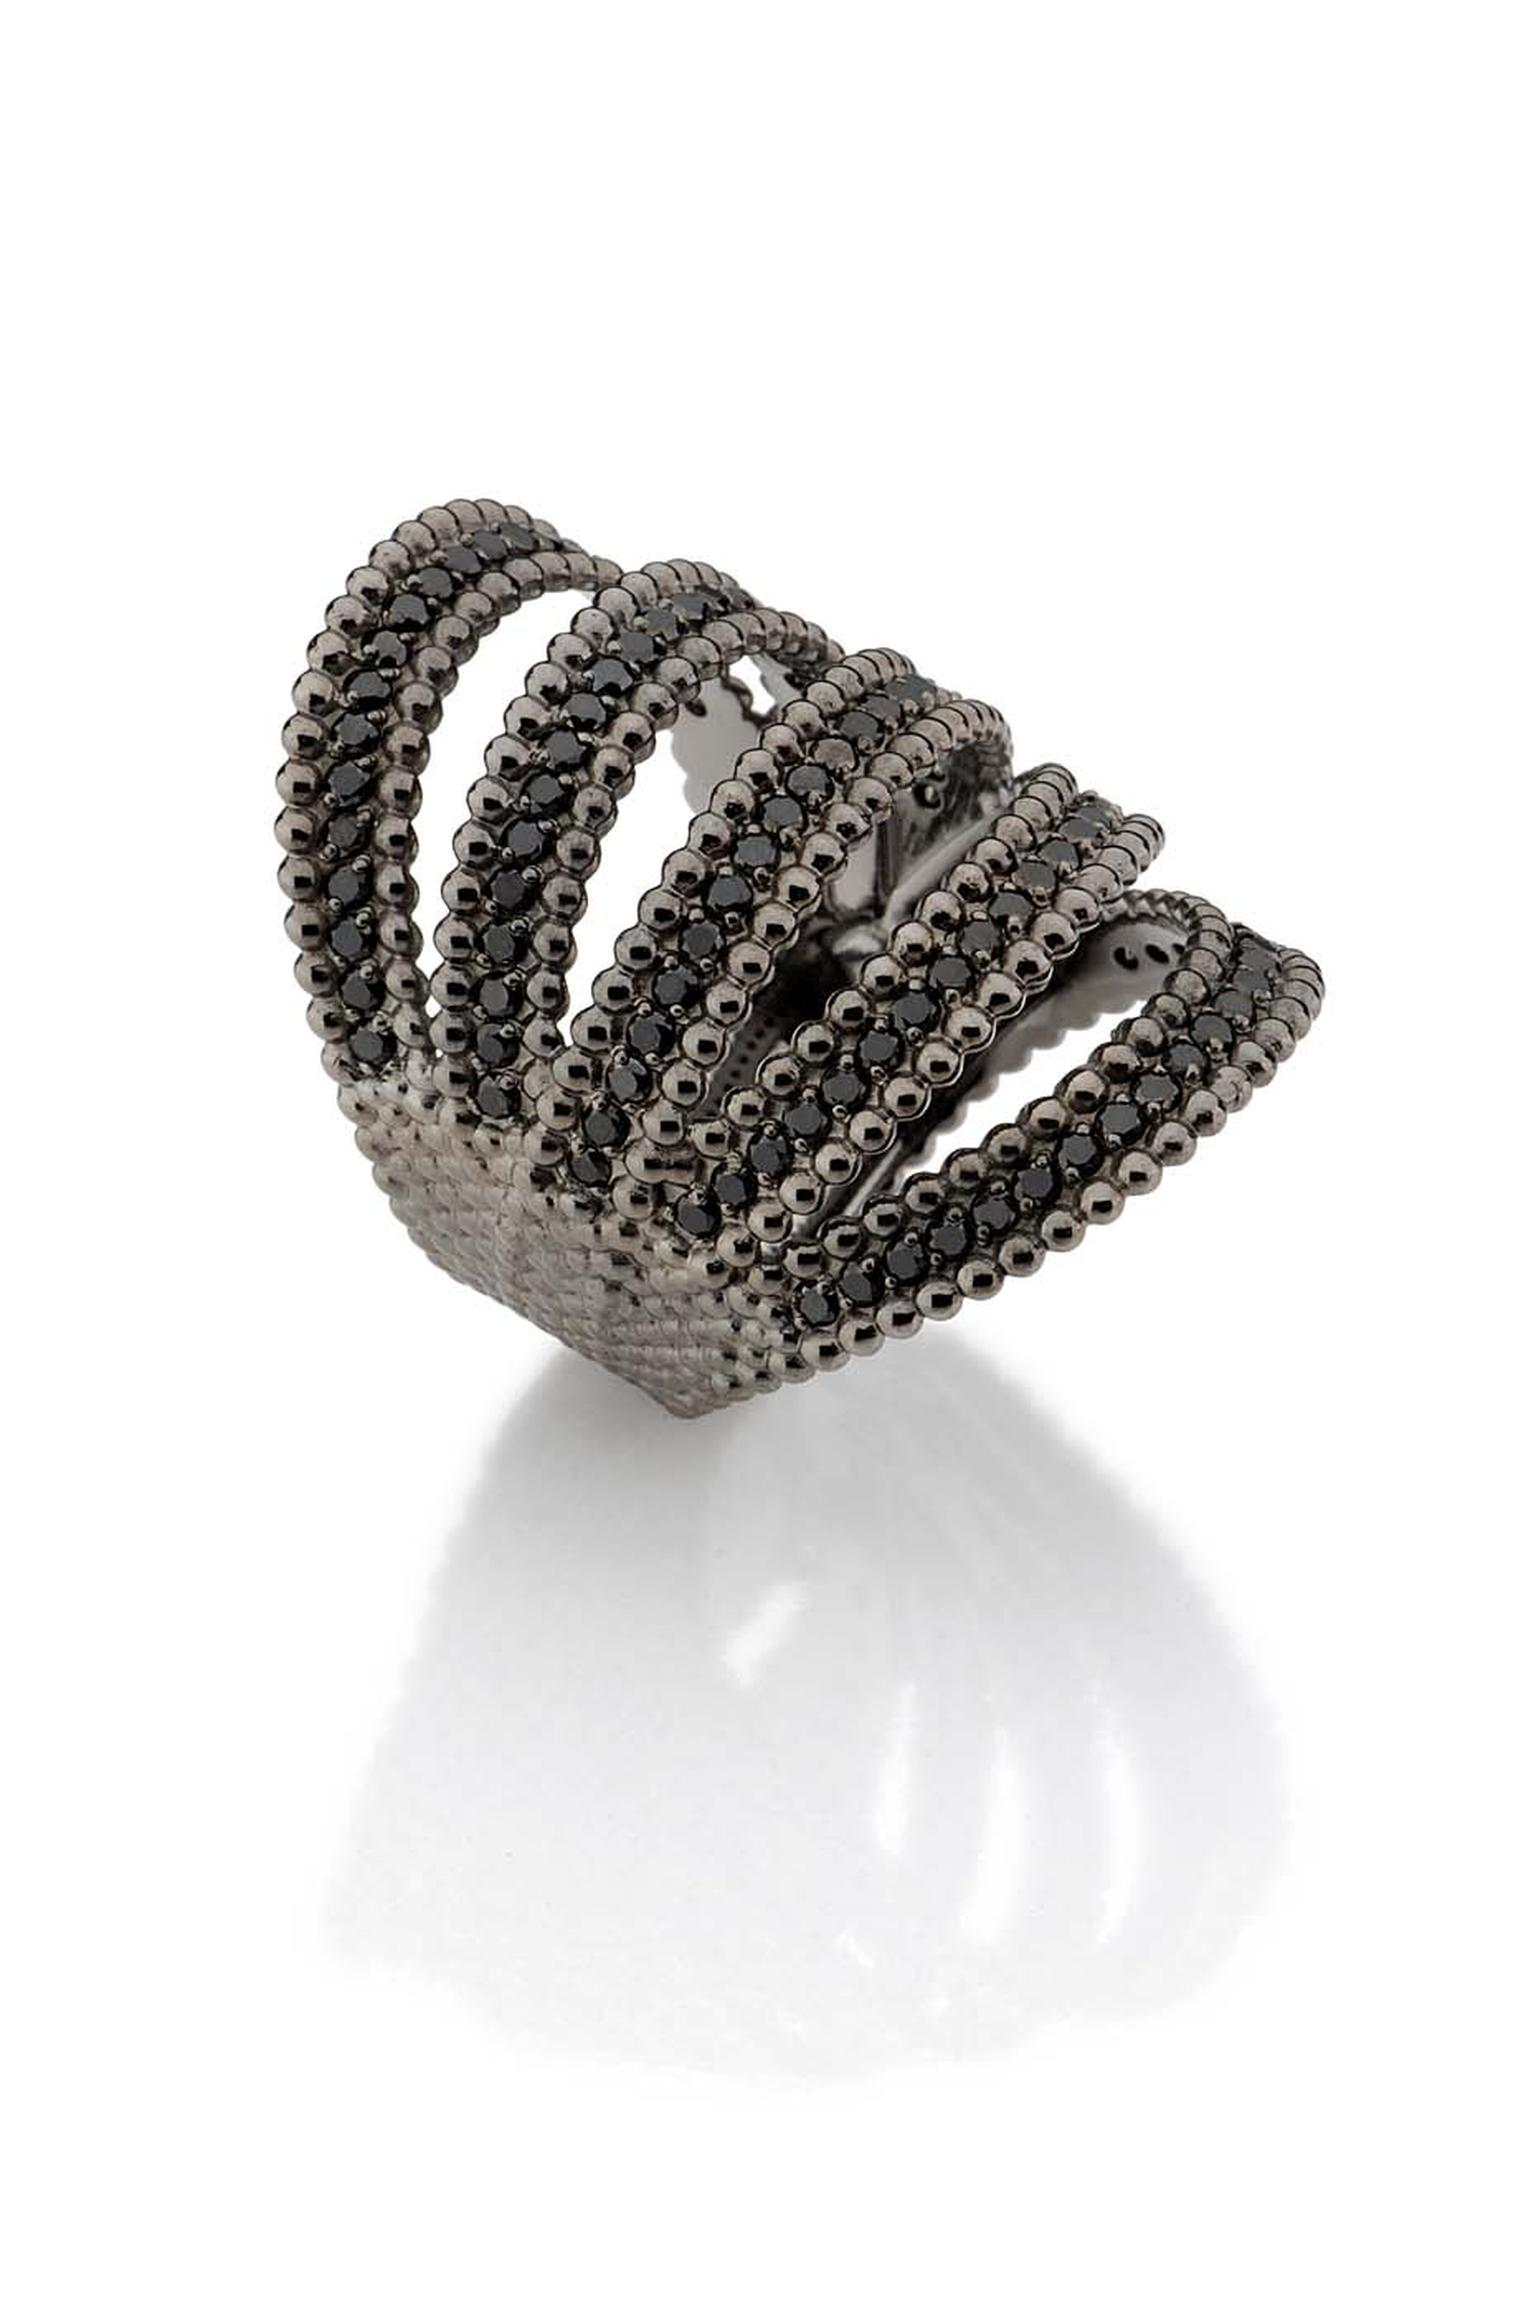 Carla Amorim Fountain black diamond ring set in black gold.